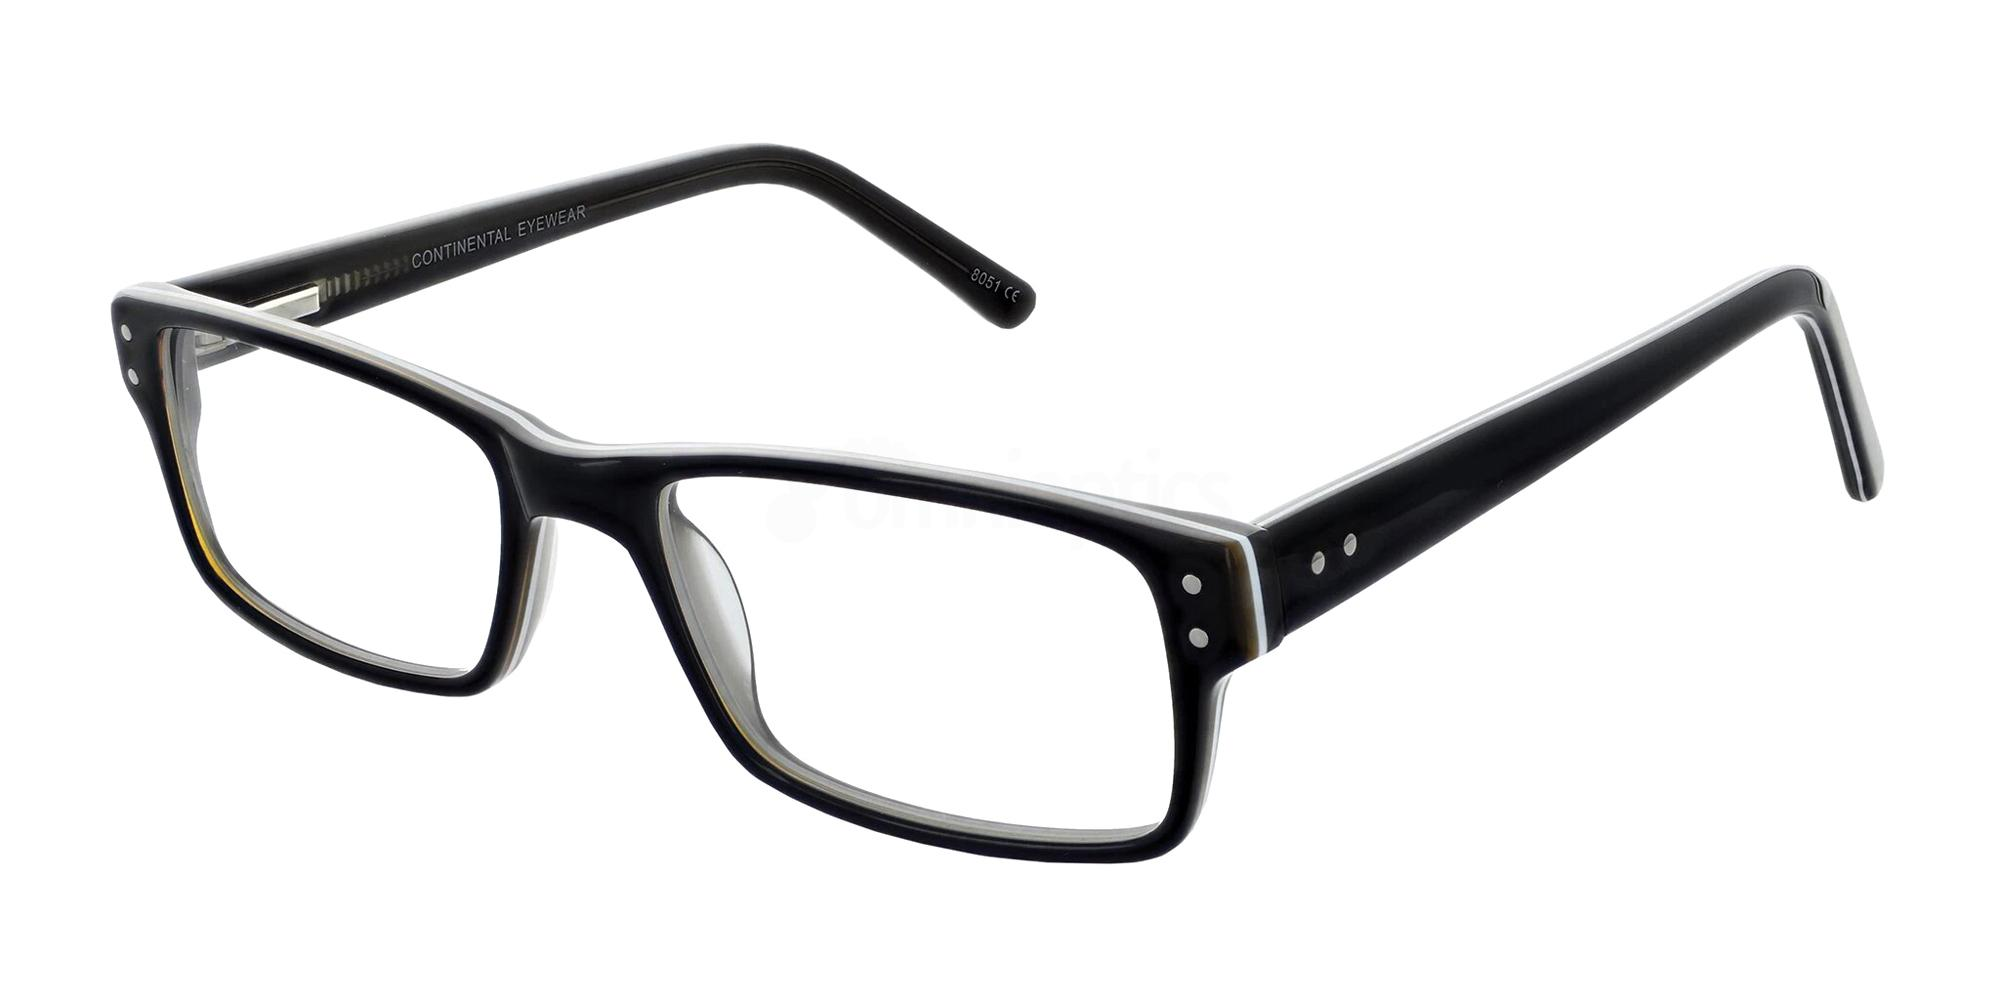 Black 77 Glasses, Zenith Zest